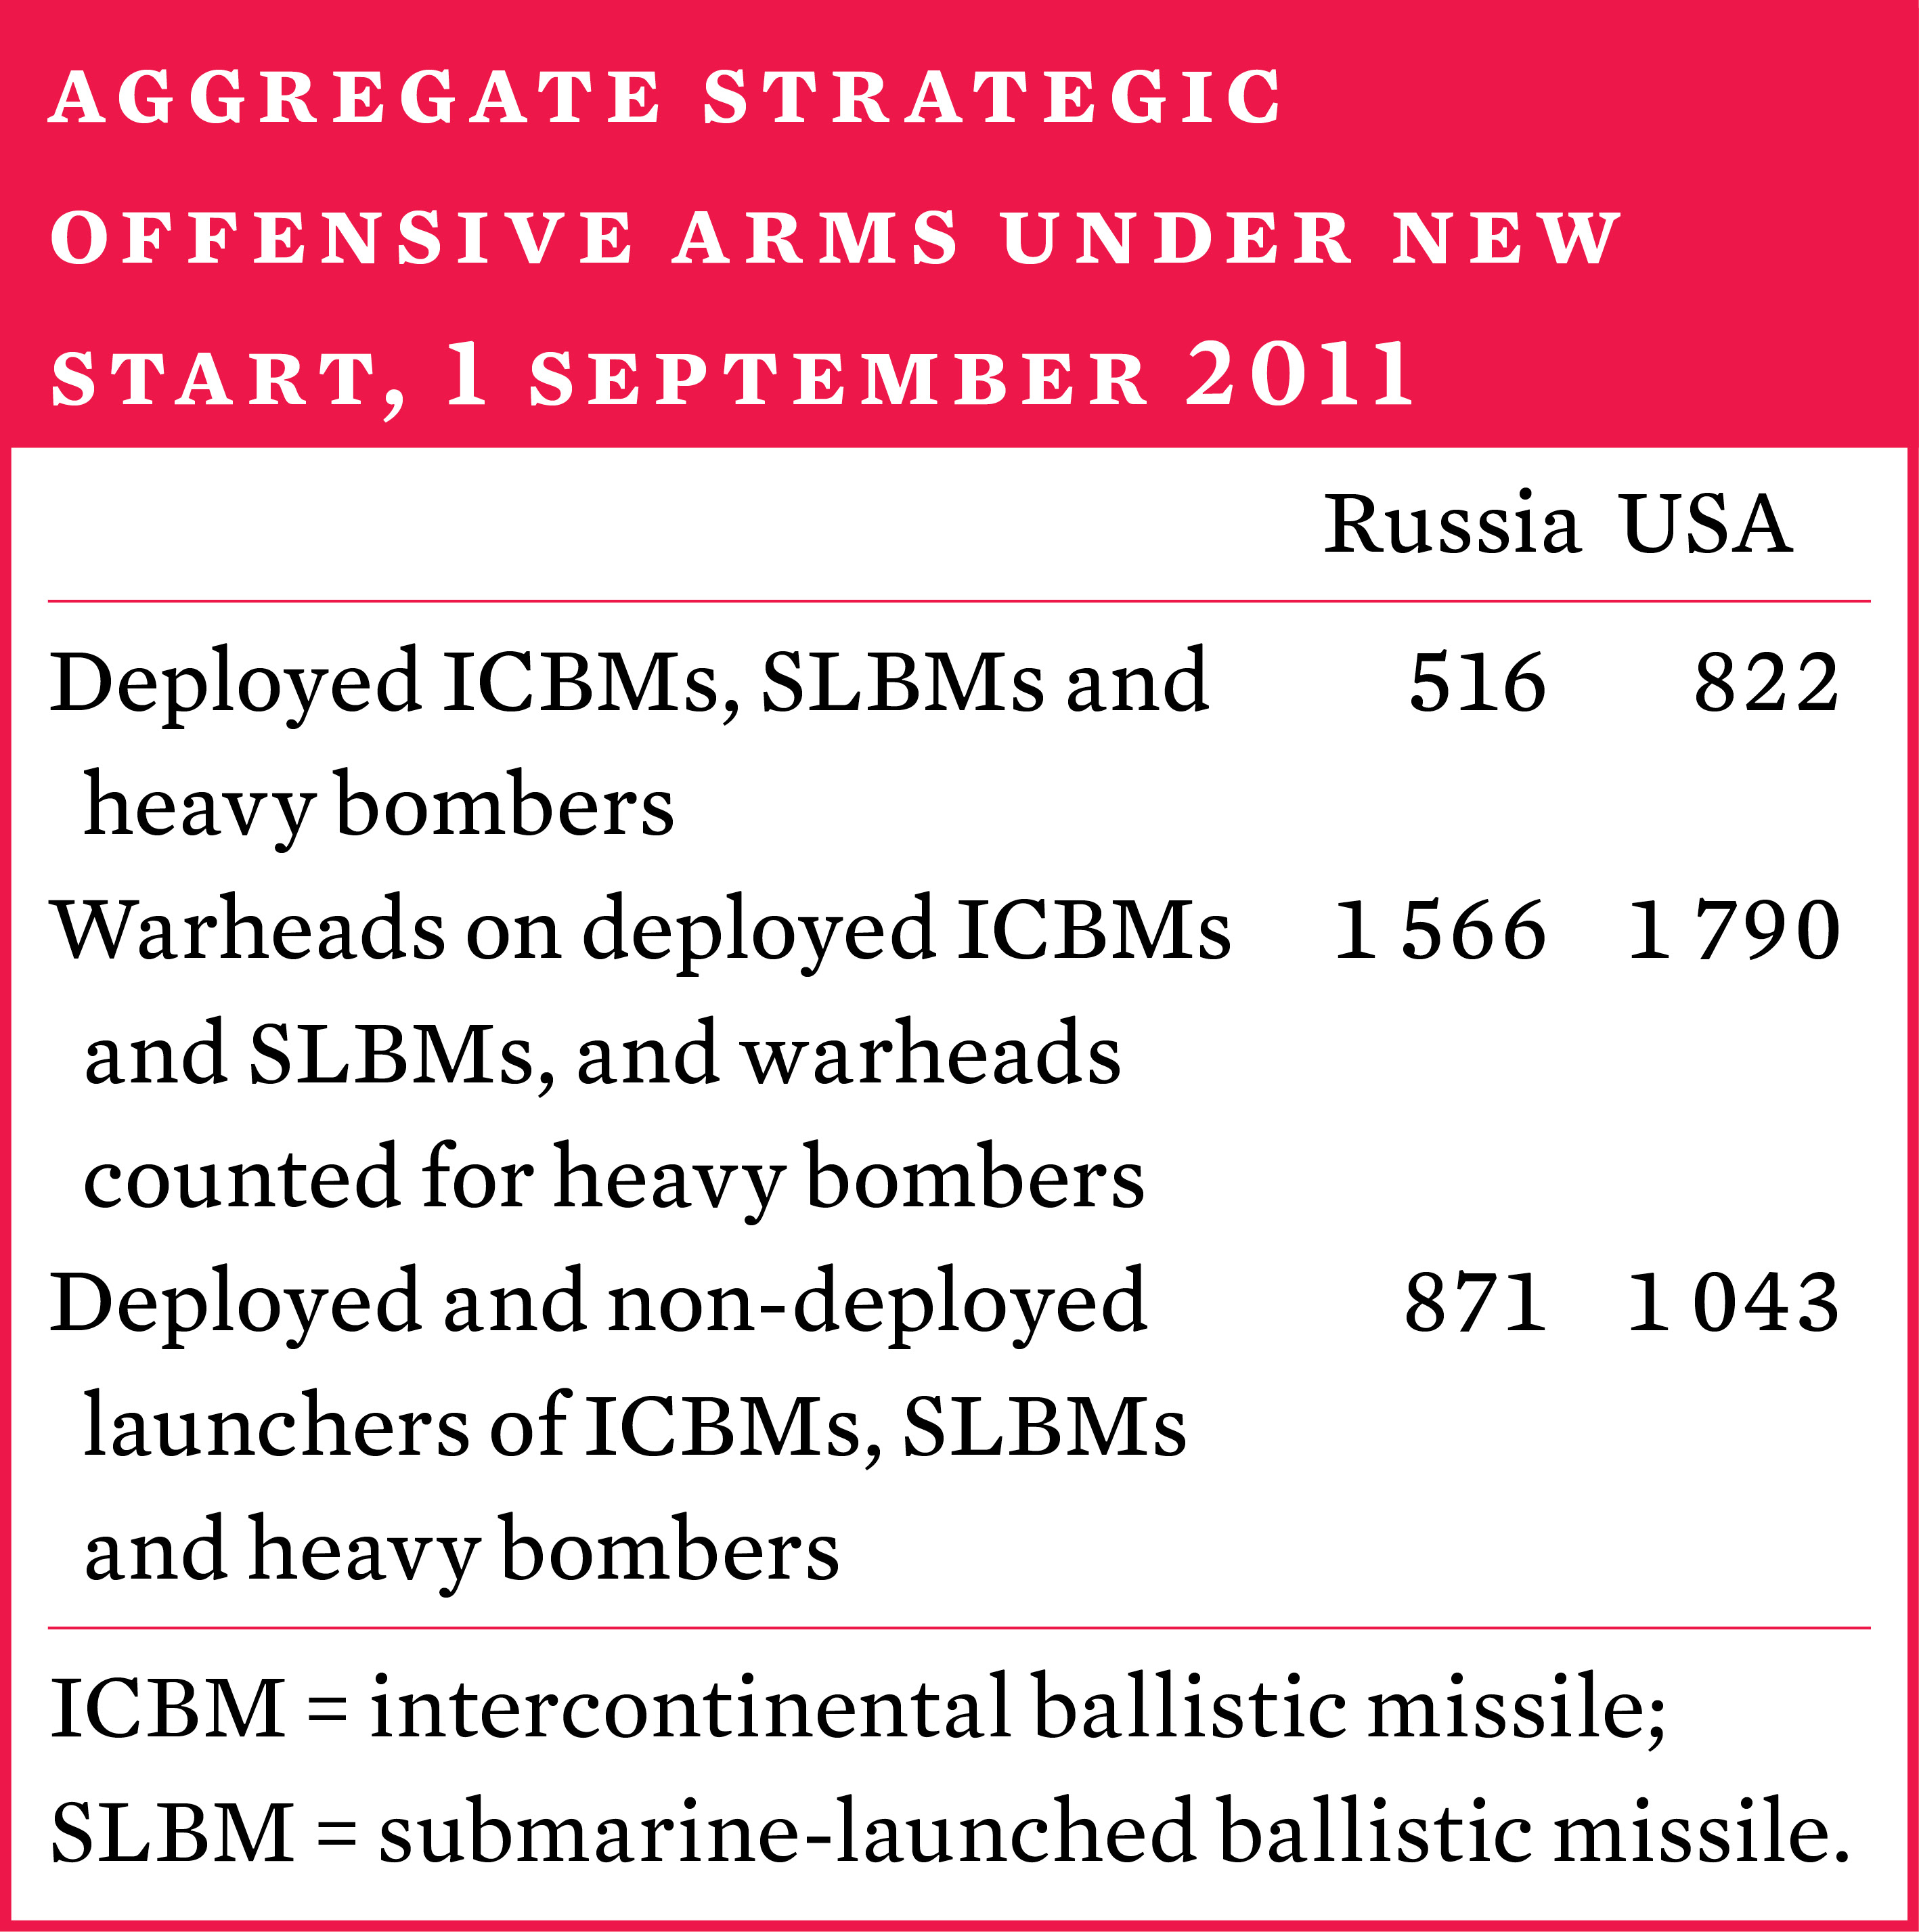 Aggregate strategic offensive arms under New START, 1 September 2011